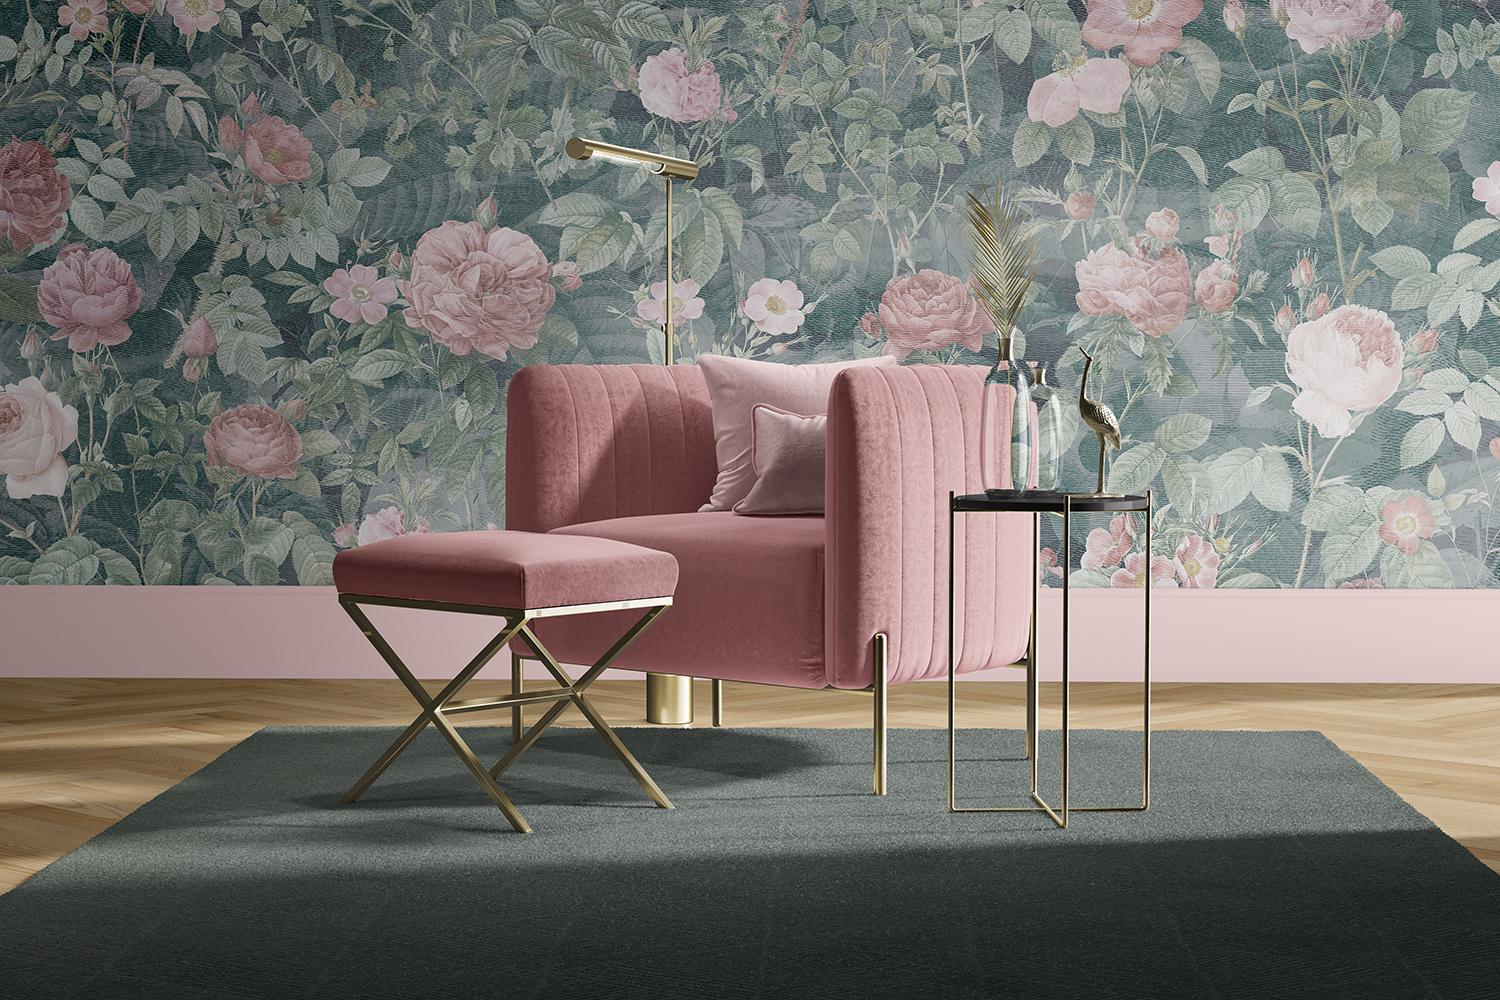 Paeonia - Custom Mural Wallpaper (green and pink)